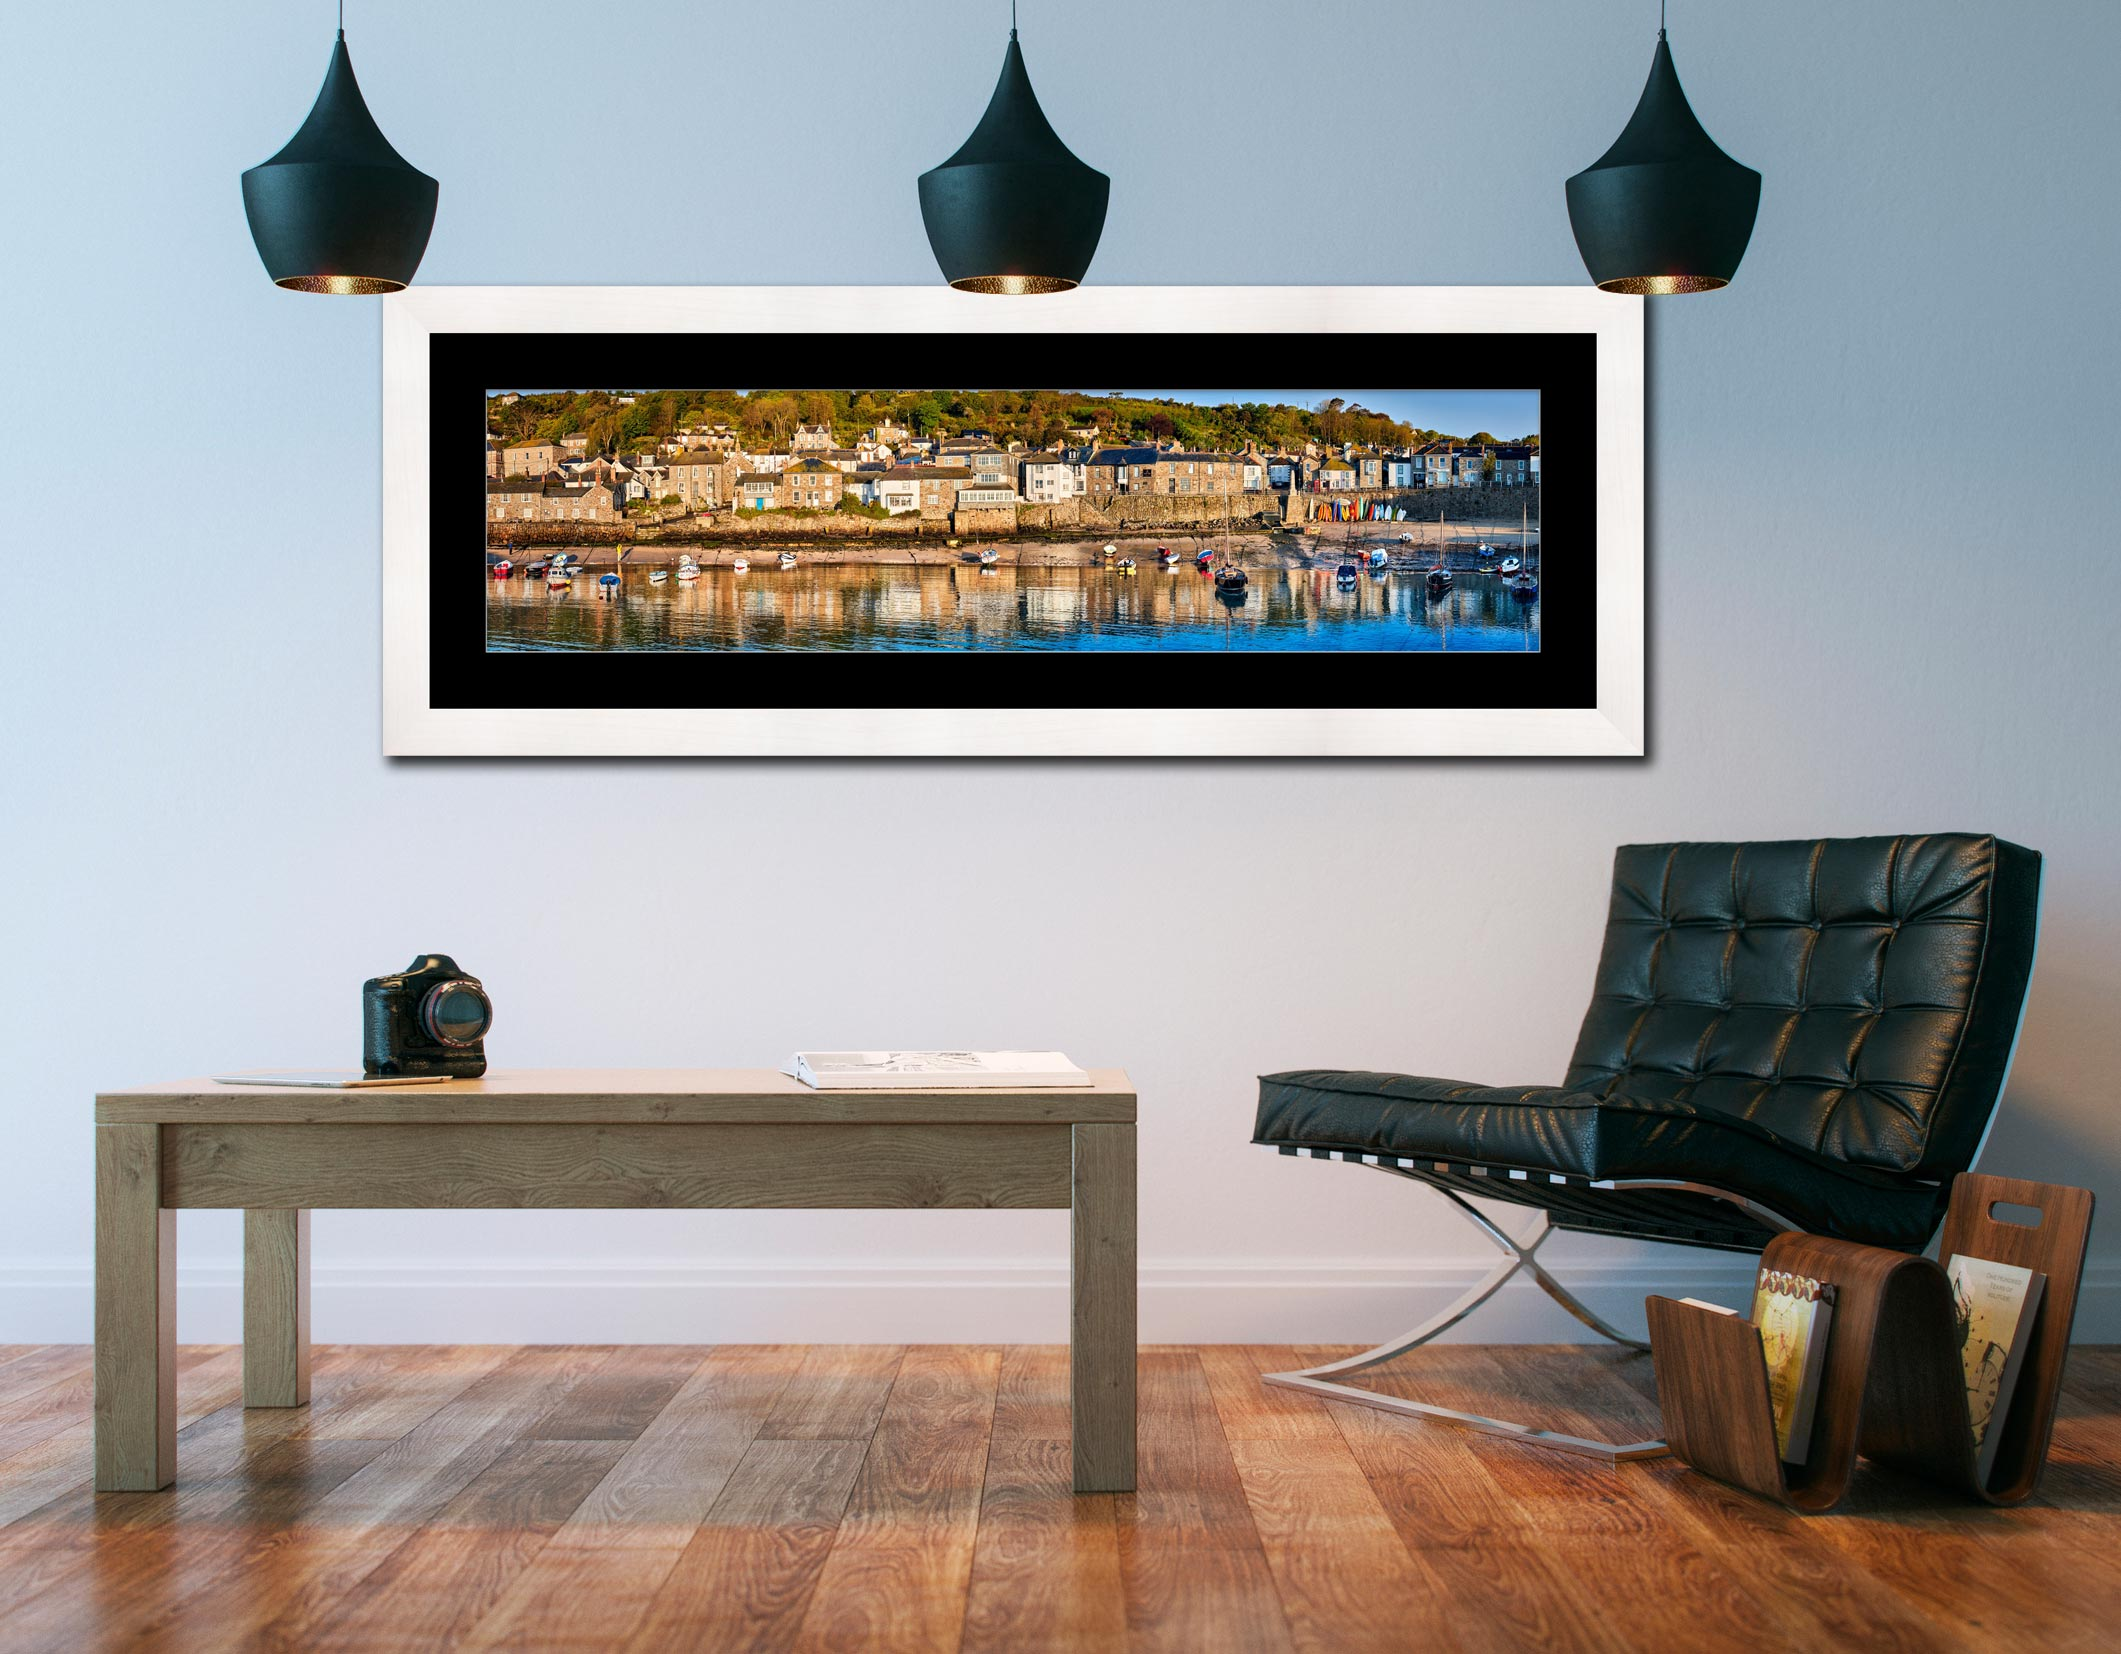 Mousehole Harbour Panorama - Framed Print with Mount on Wall